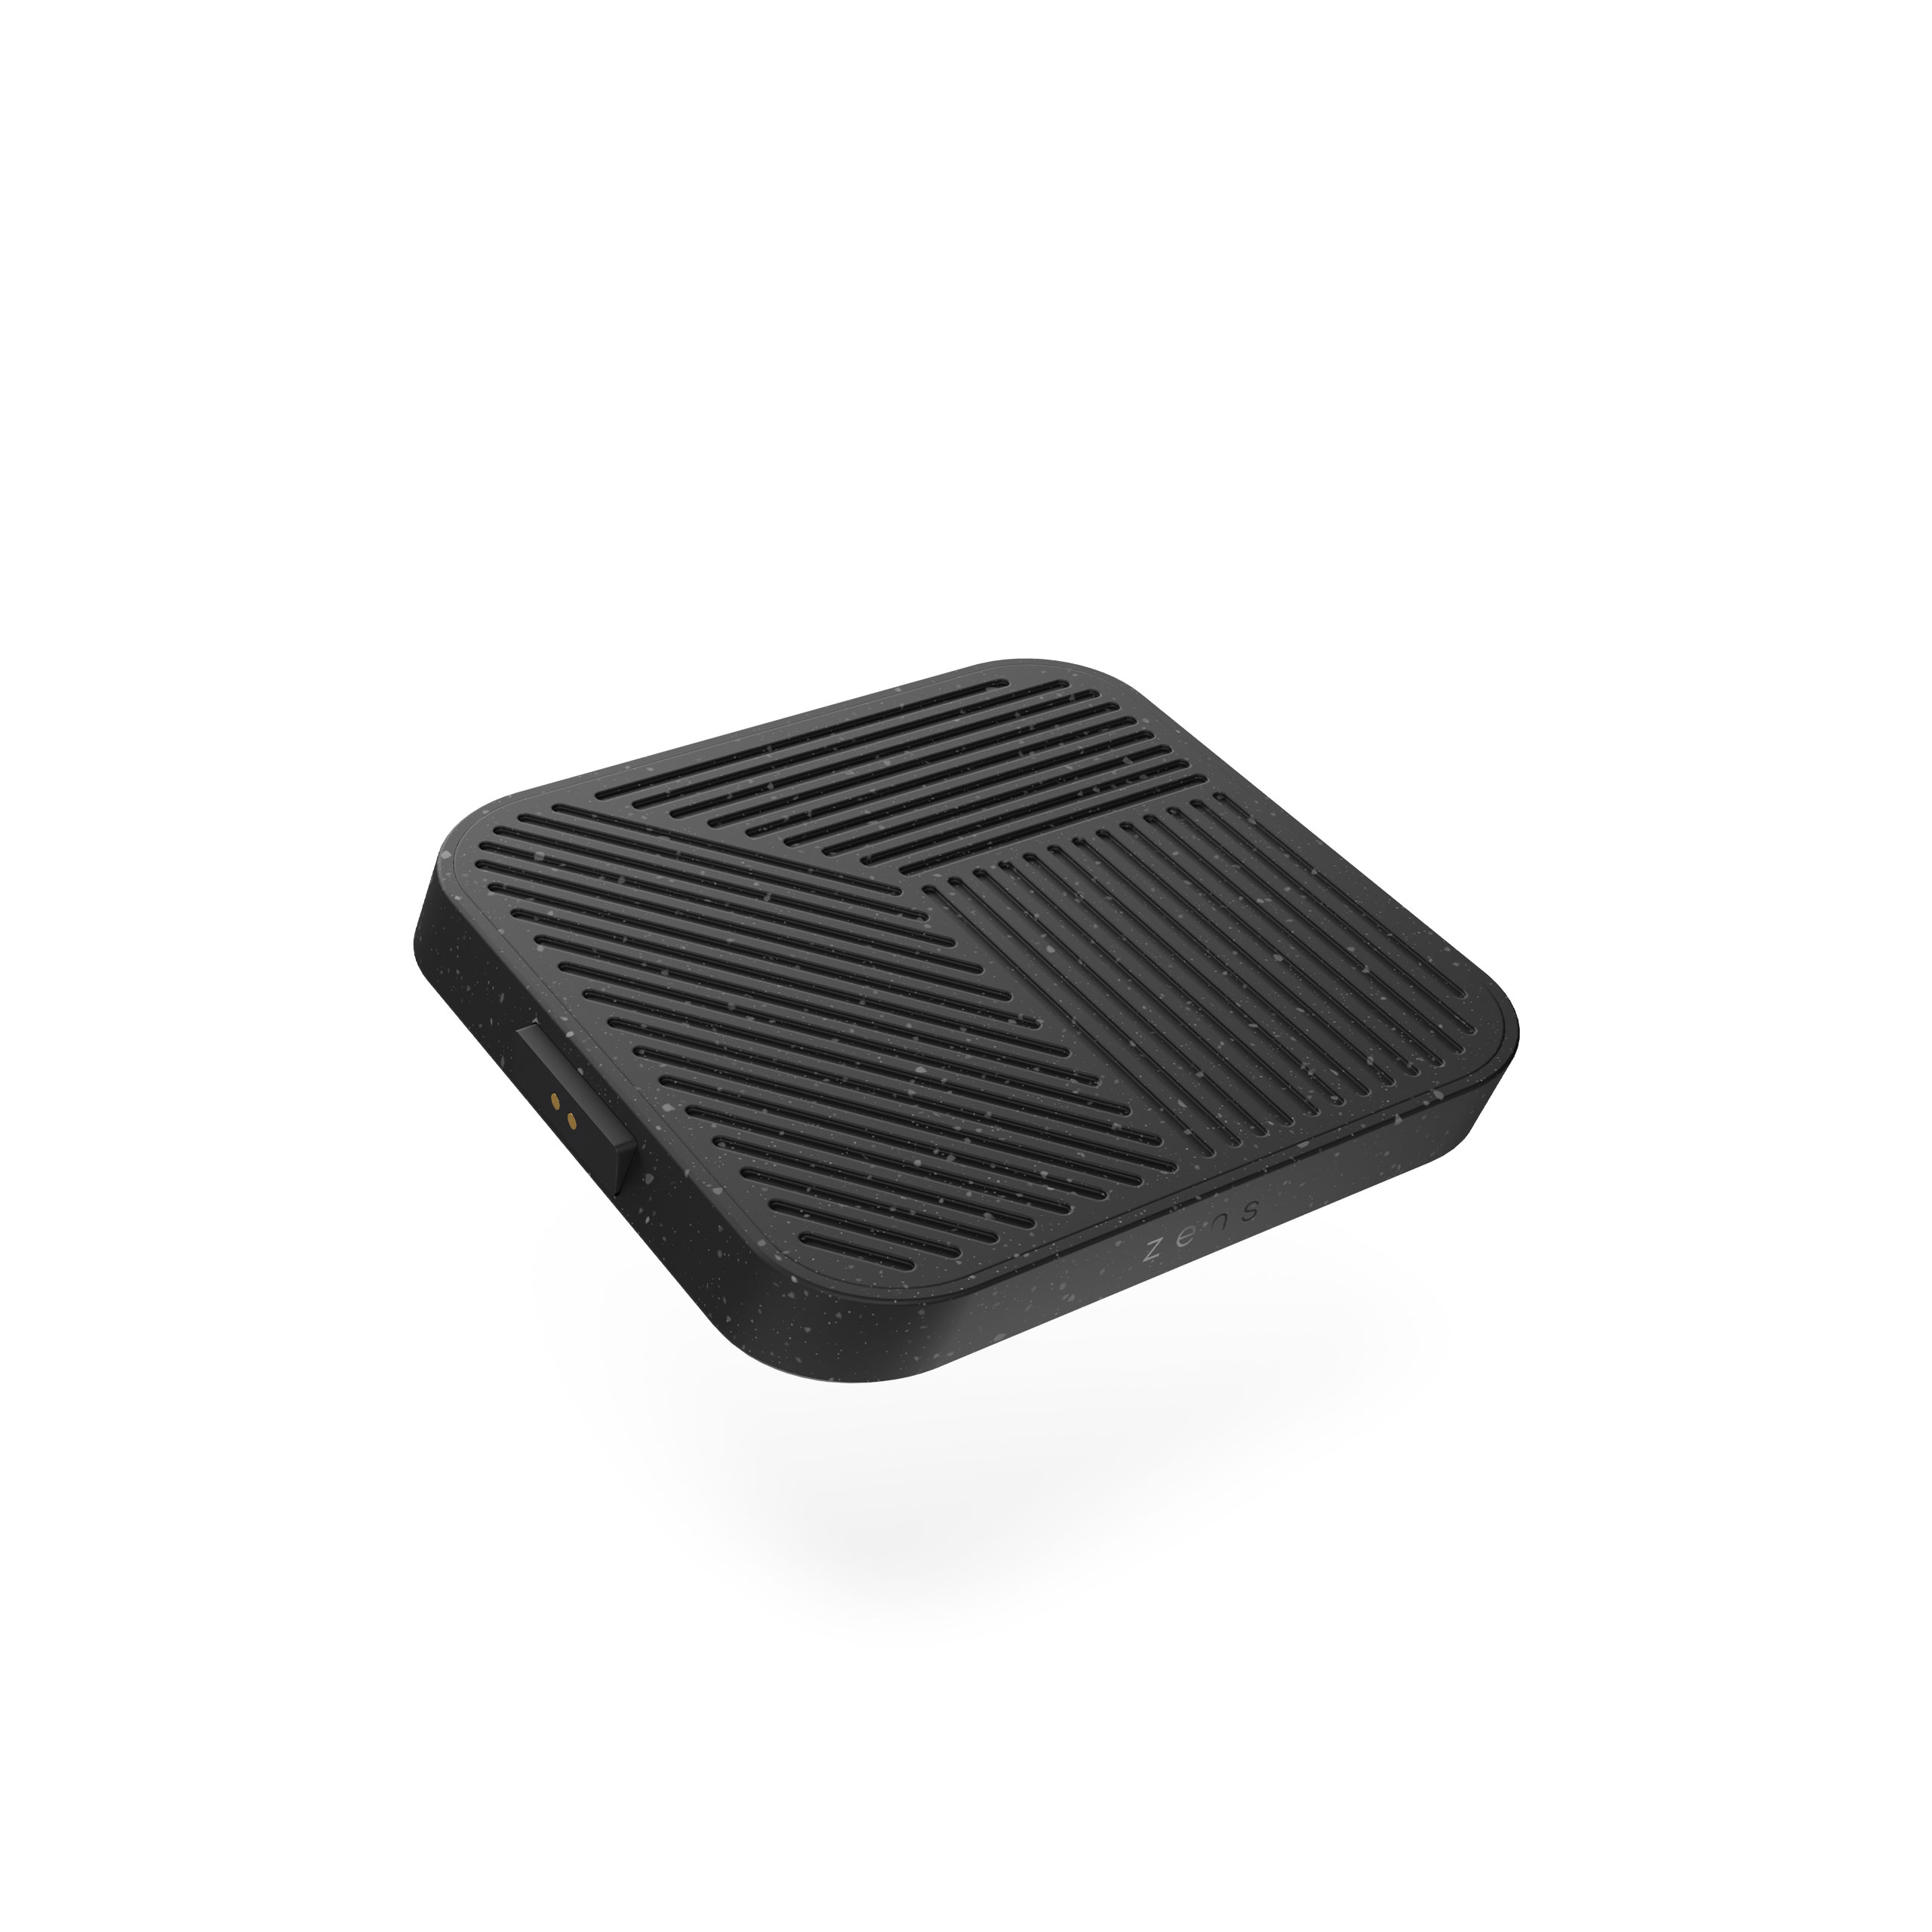 ZEMSC01A Zens Modular Single Wireless Charger Extension Front Side View